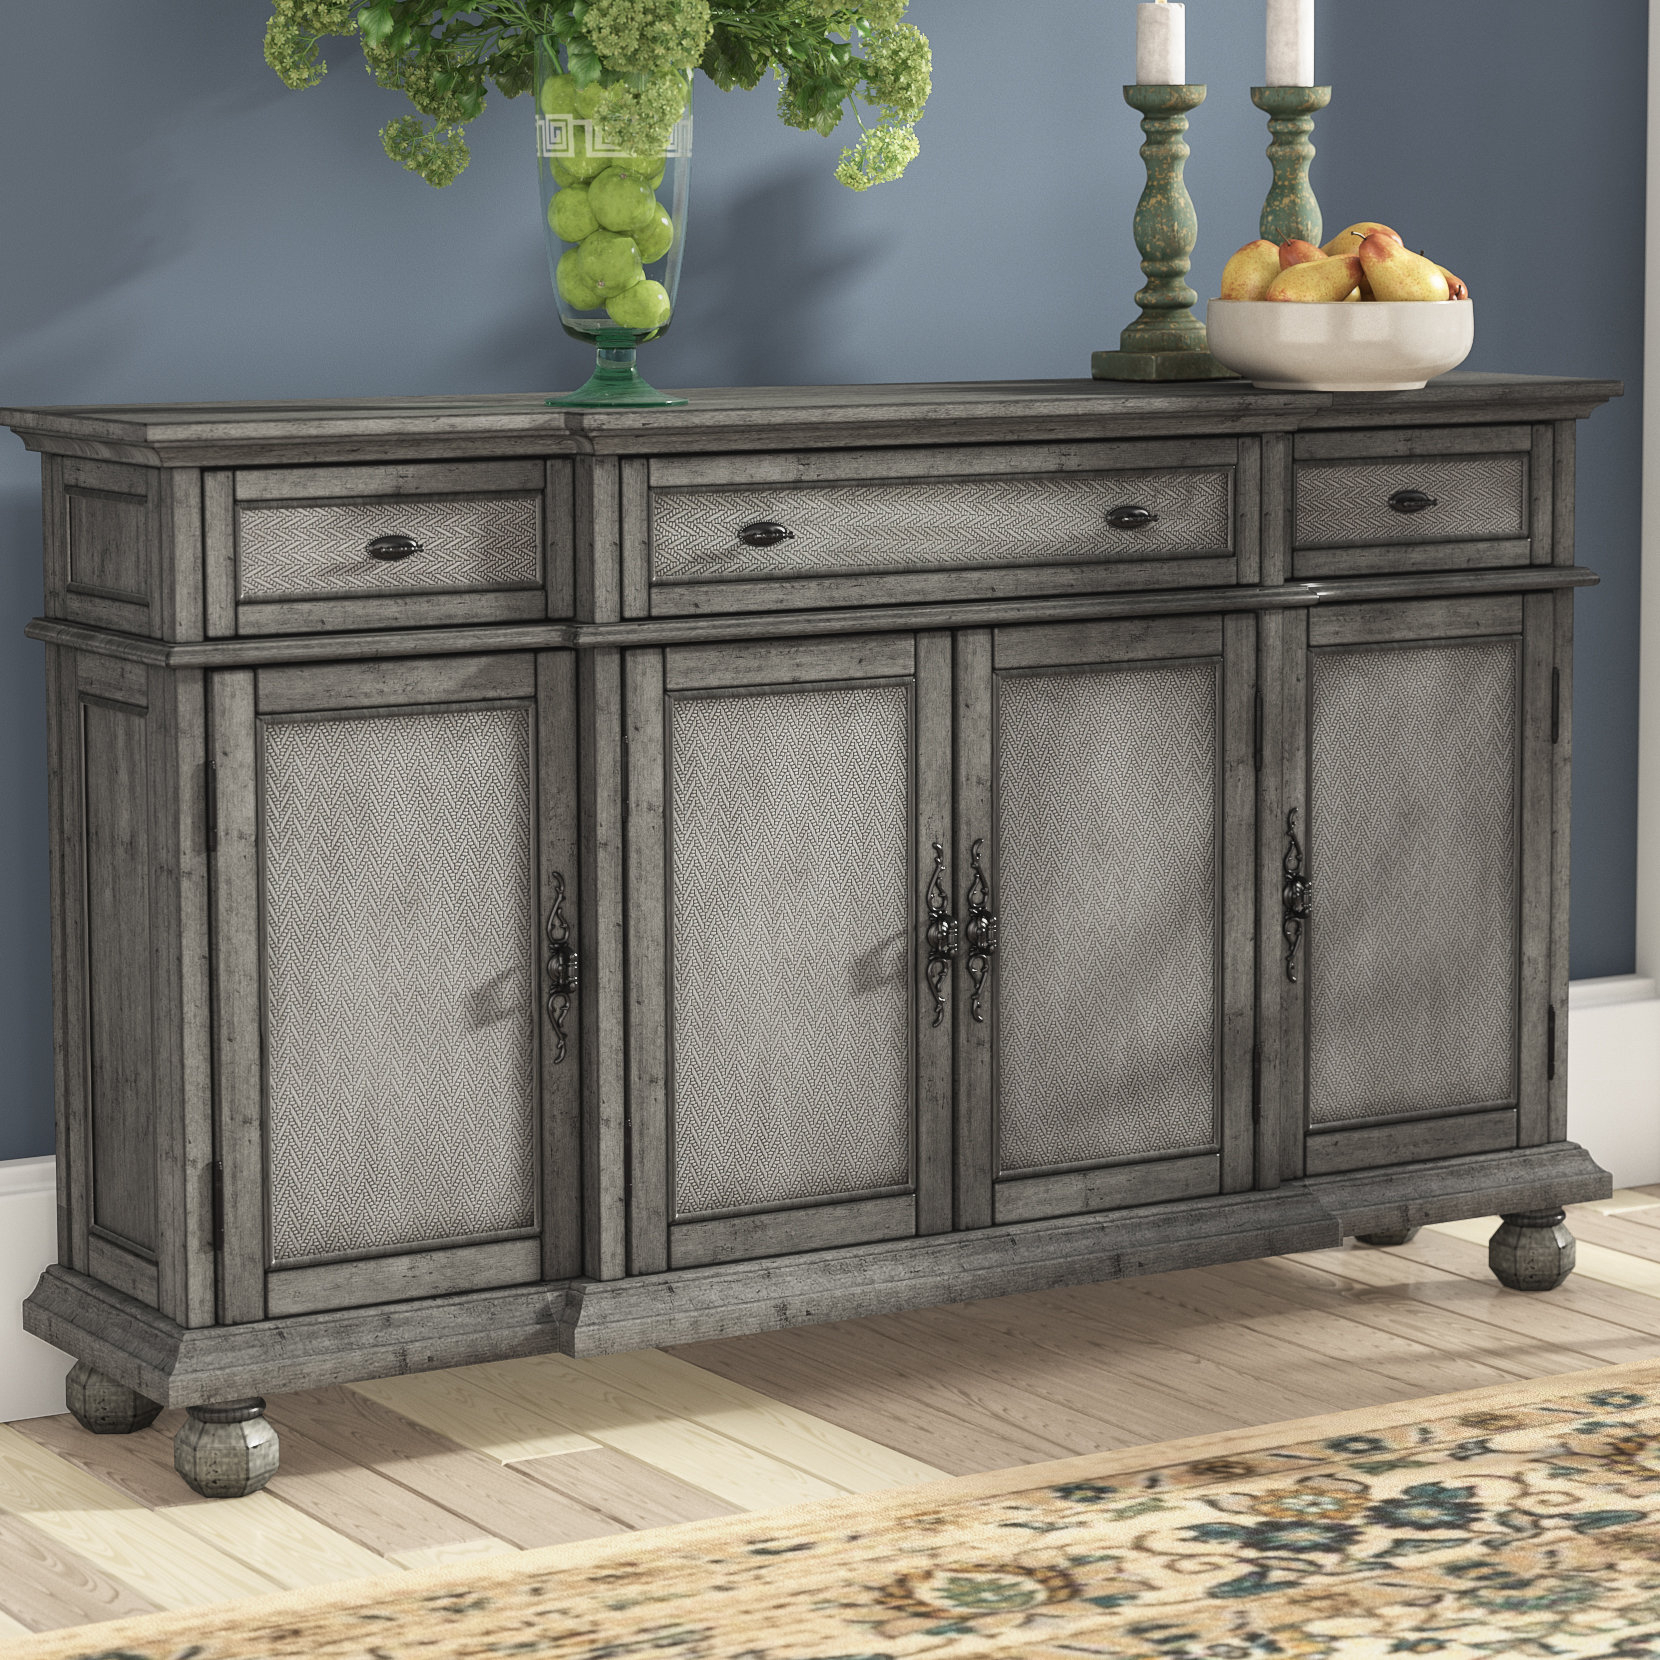 70 Inch Credenza You'll Love In 2019 | Wayfair Within Caines Credenzas (View 3 of 30)